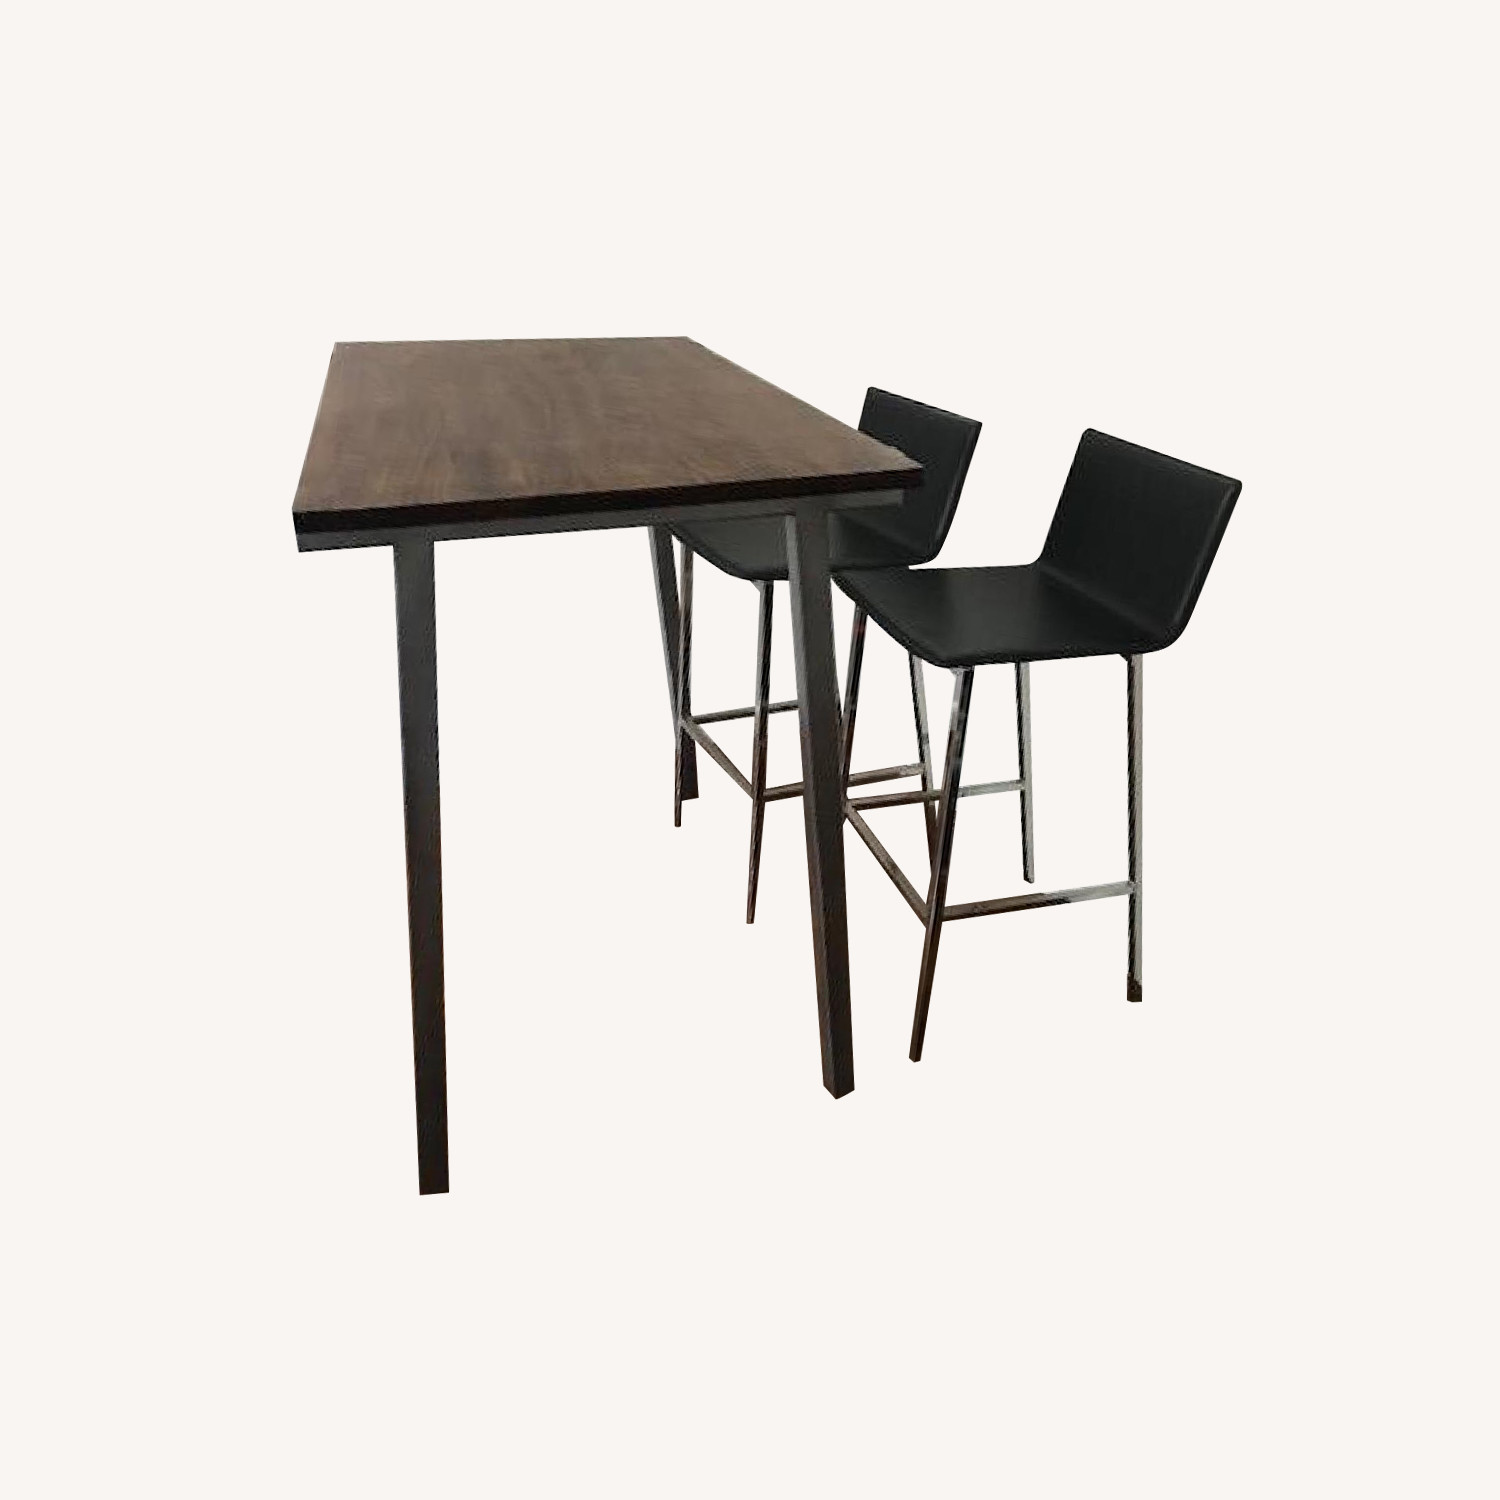 CB2 High Dining Table w/ 4 Barstools